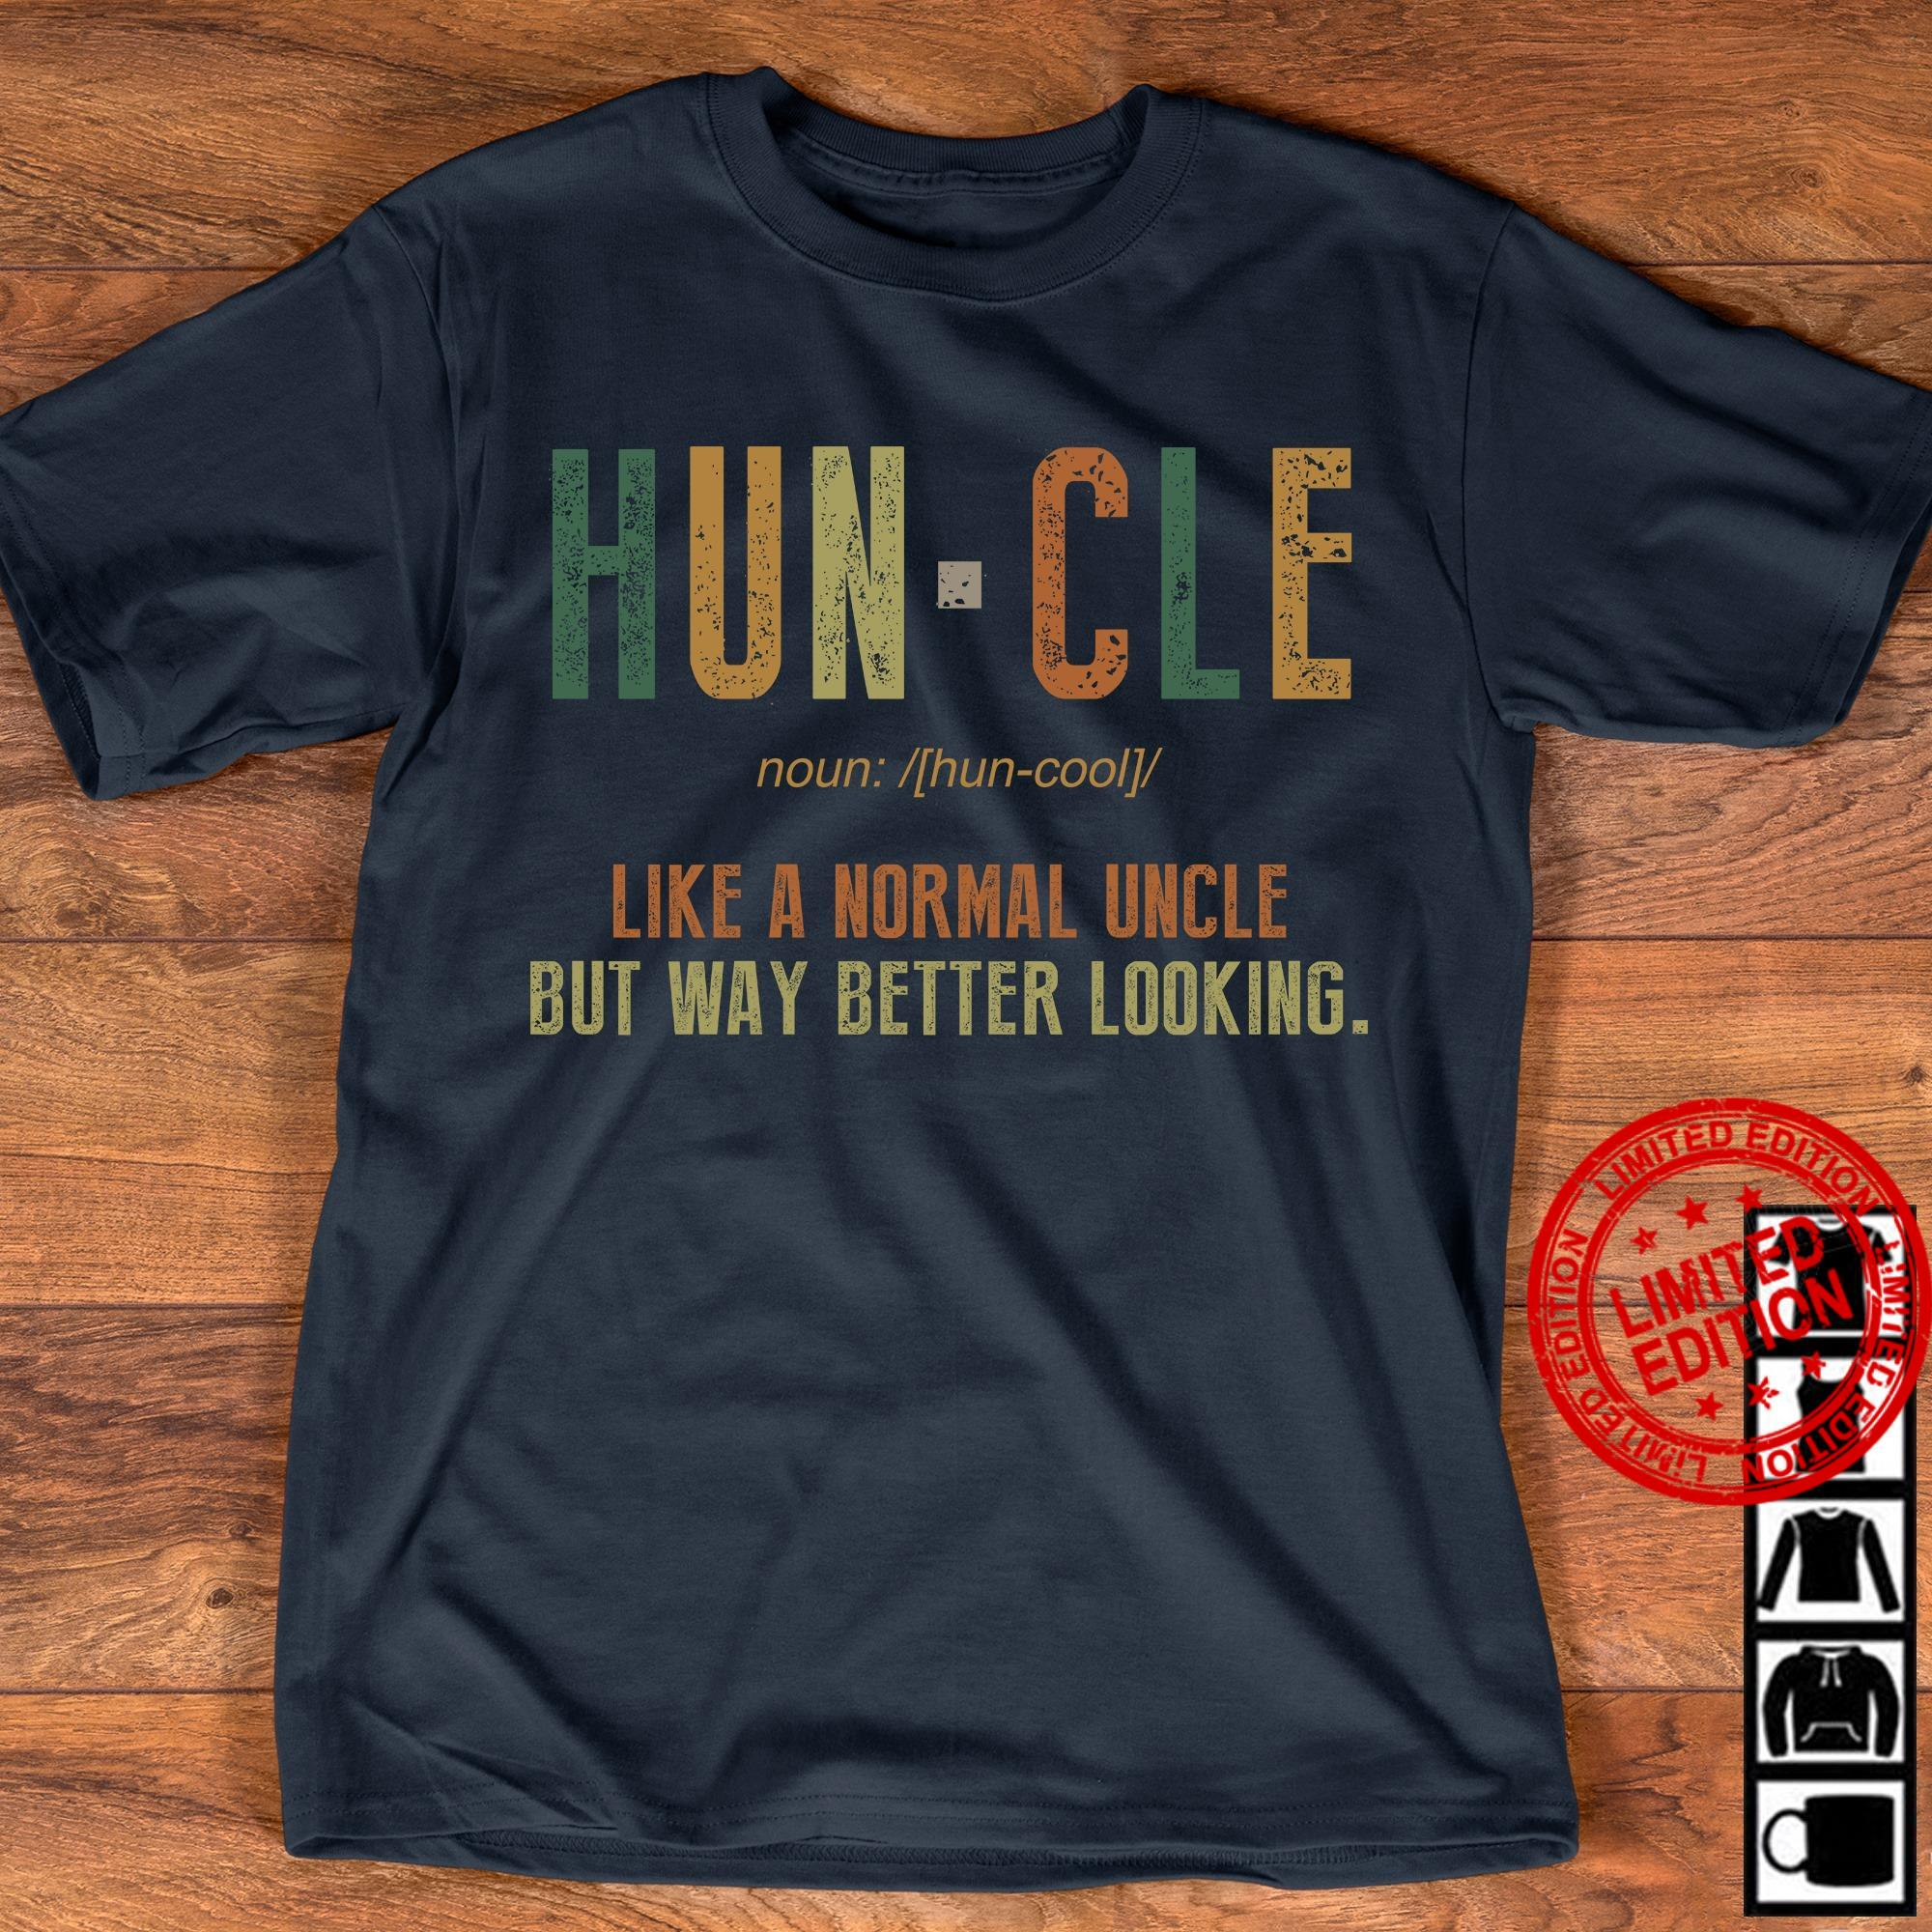 Hun - Cle Like A Normal Uncle But Way Better Looking Shirt